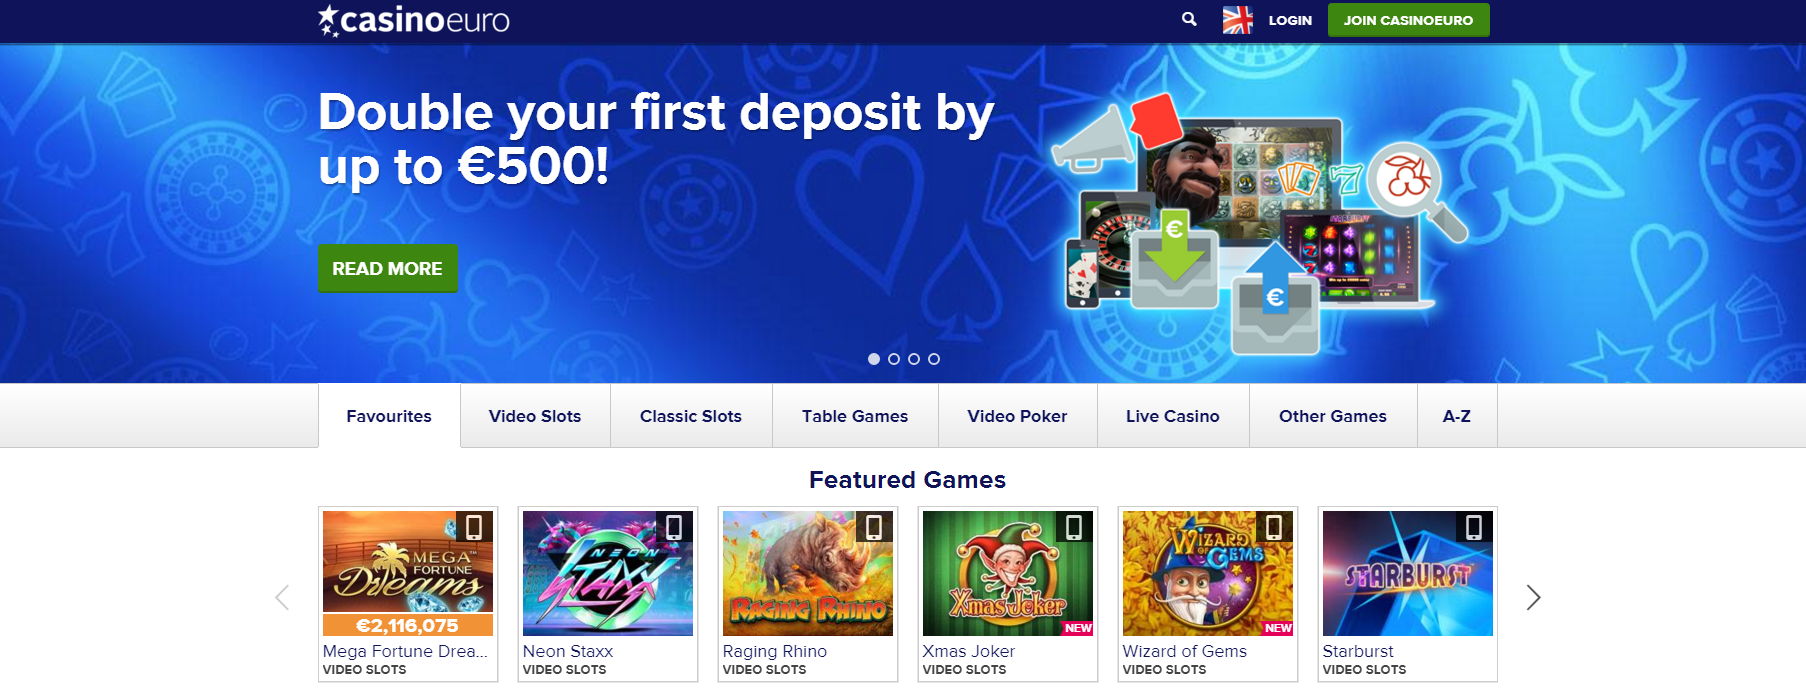 welcome bonus casinoeuro